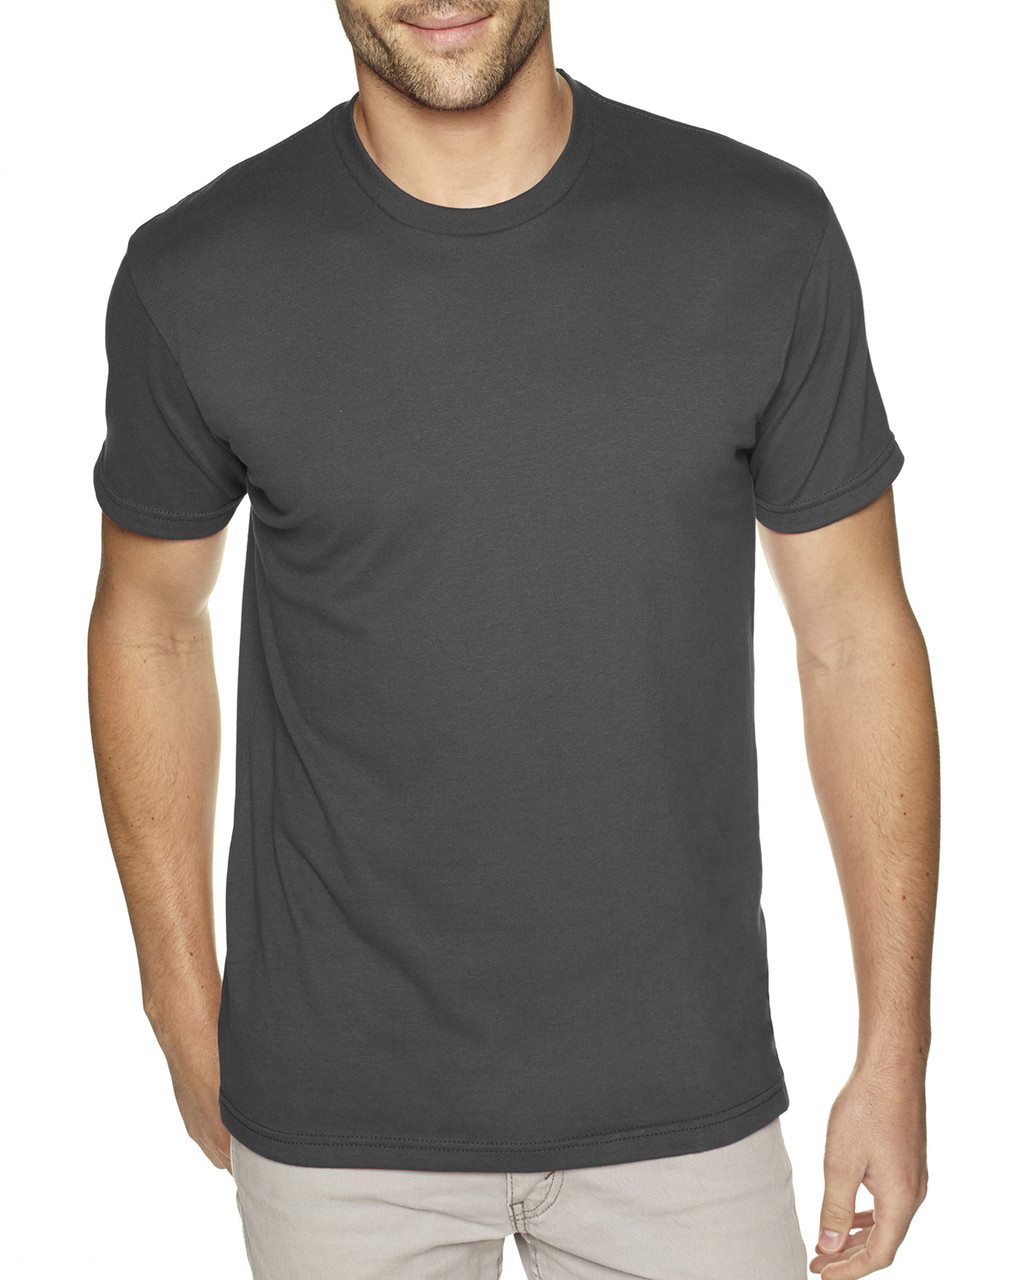 Heavy Metal - 6410 Next Level Men's Premium Fitted Sueded T-Shirt | Blankclothing.ca